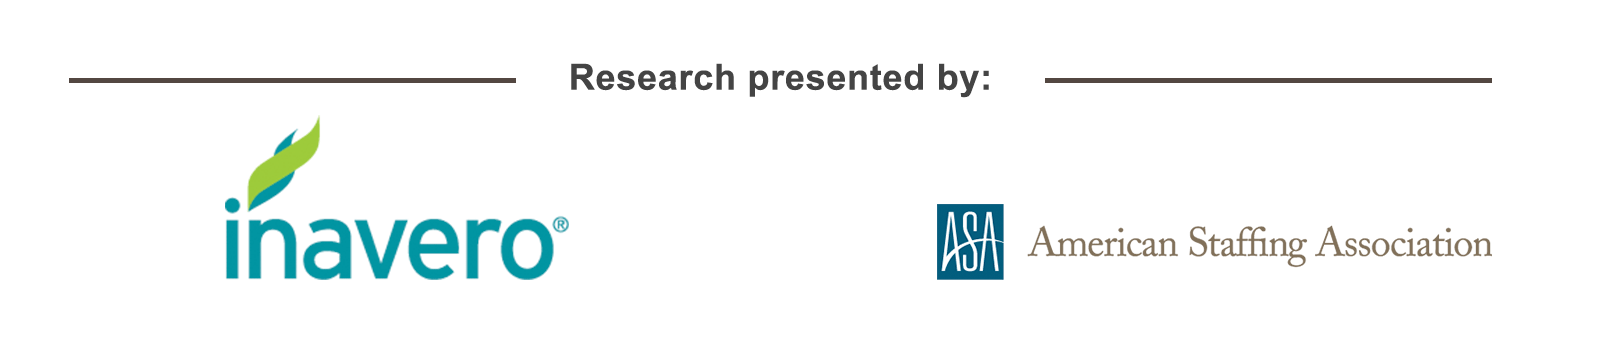 Research-presented-by-2logo-sidebyside